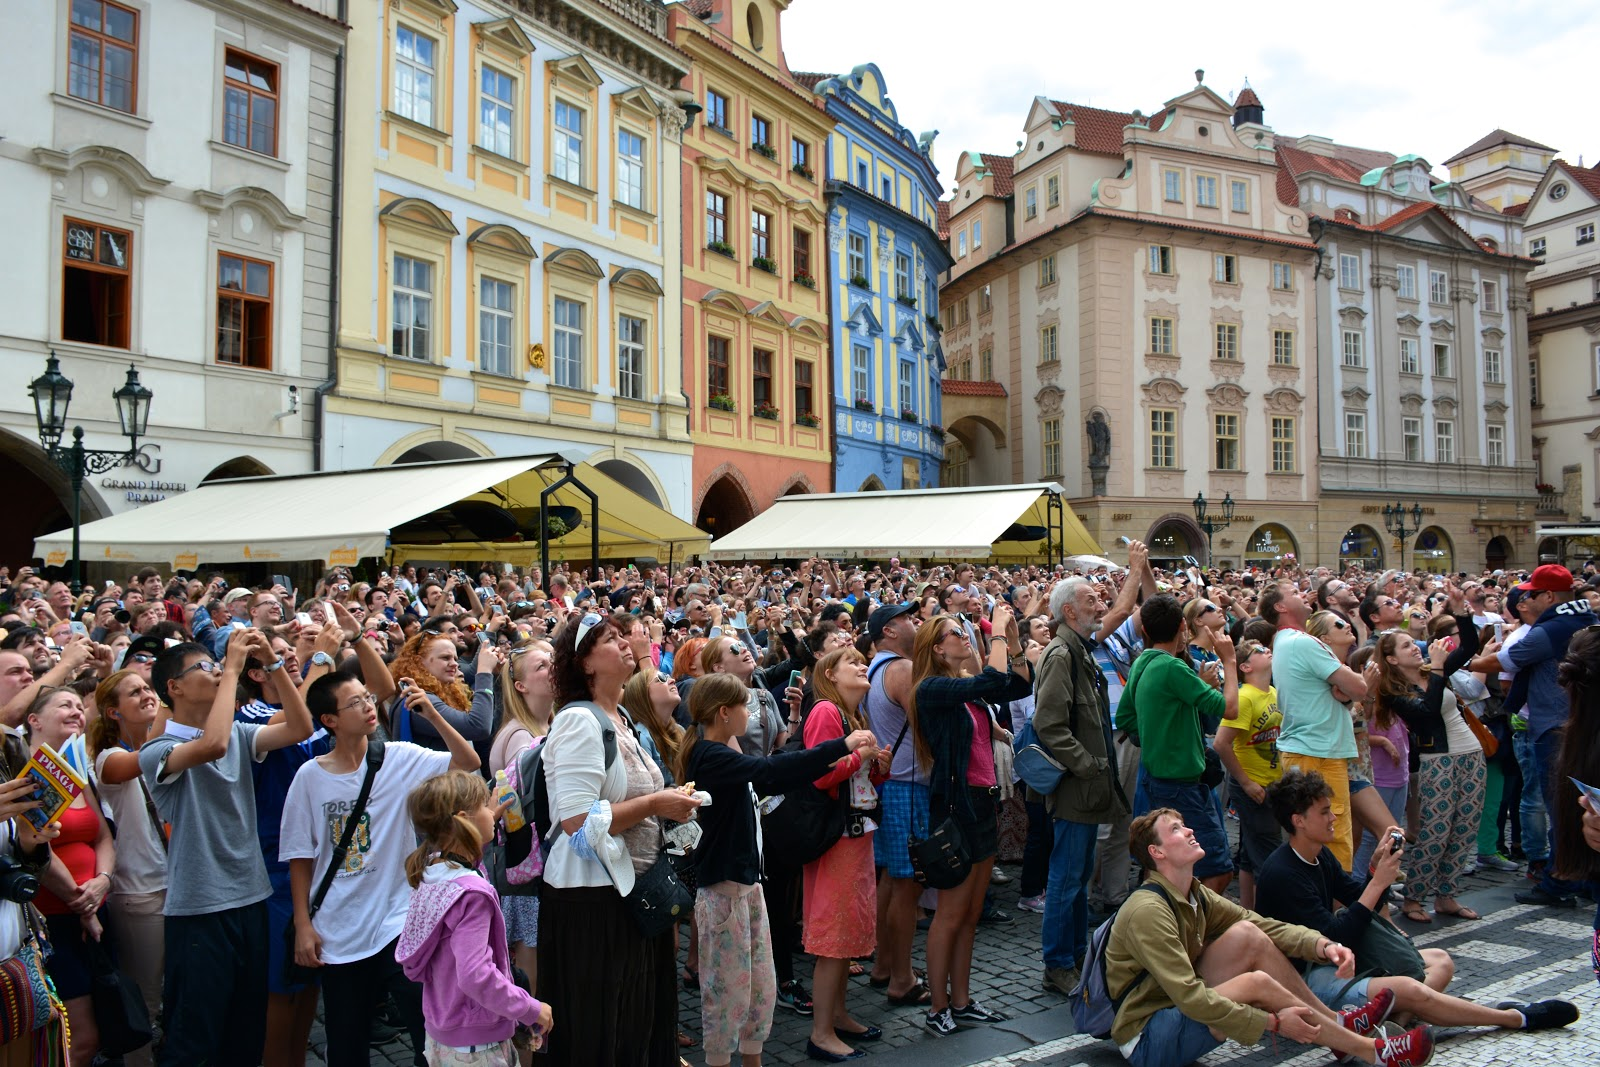 Crowds gather at the Prague astronomical clock